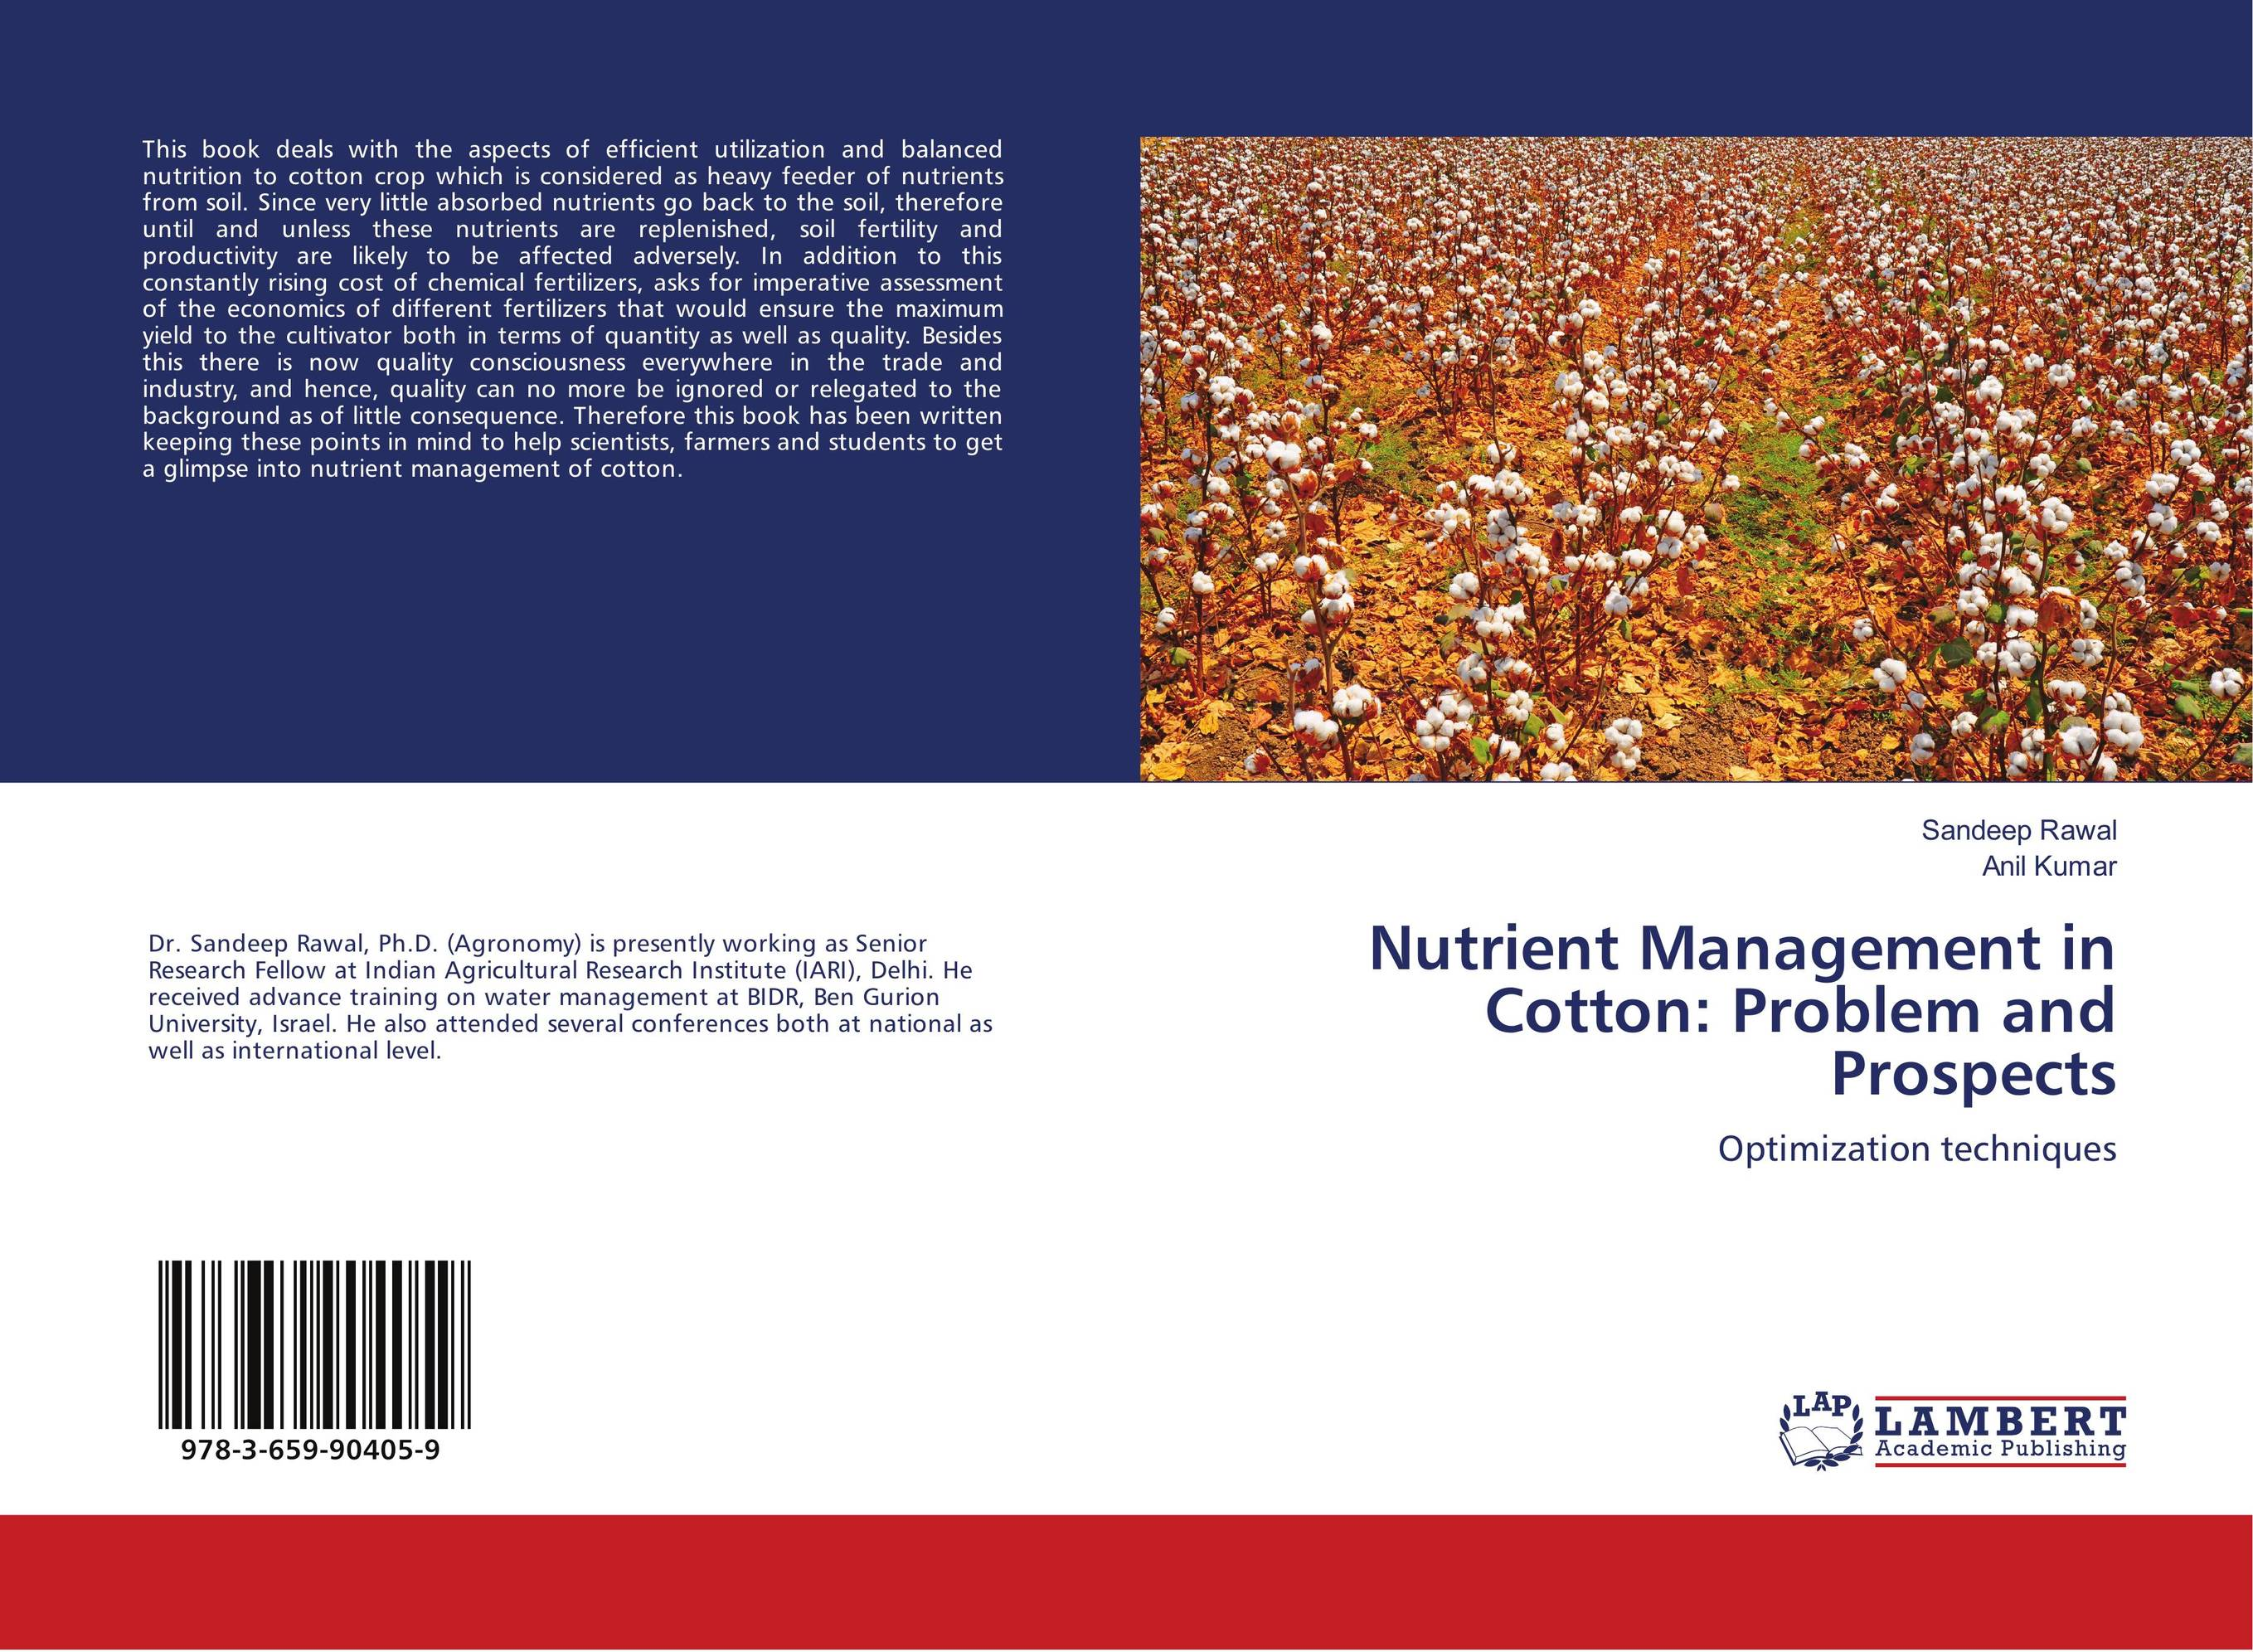 financial factors in cotton cultivation Biotechnologically engineered cotton cultivation in tamil nadu and the factors affecting the adoption of  both the financial and environmental costs of heavy pesticide applications to cotton are  cotton cultivation in tamil nadu and the factors affecting the adoption of bt cotton varieties this study.